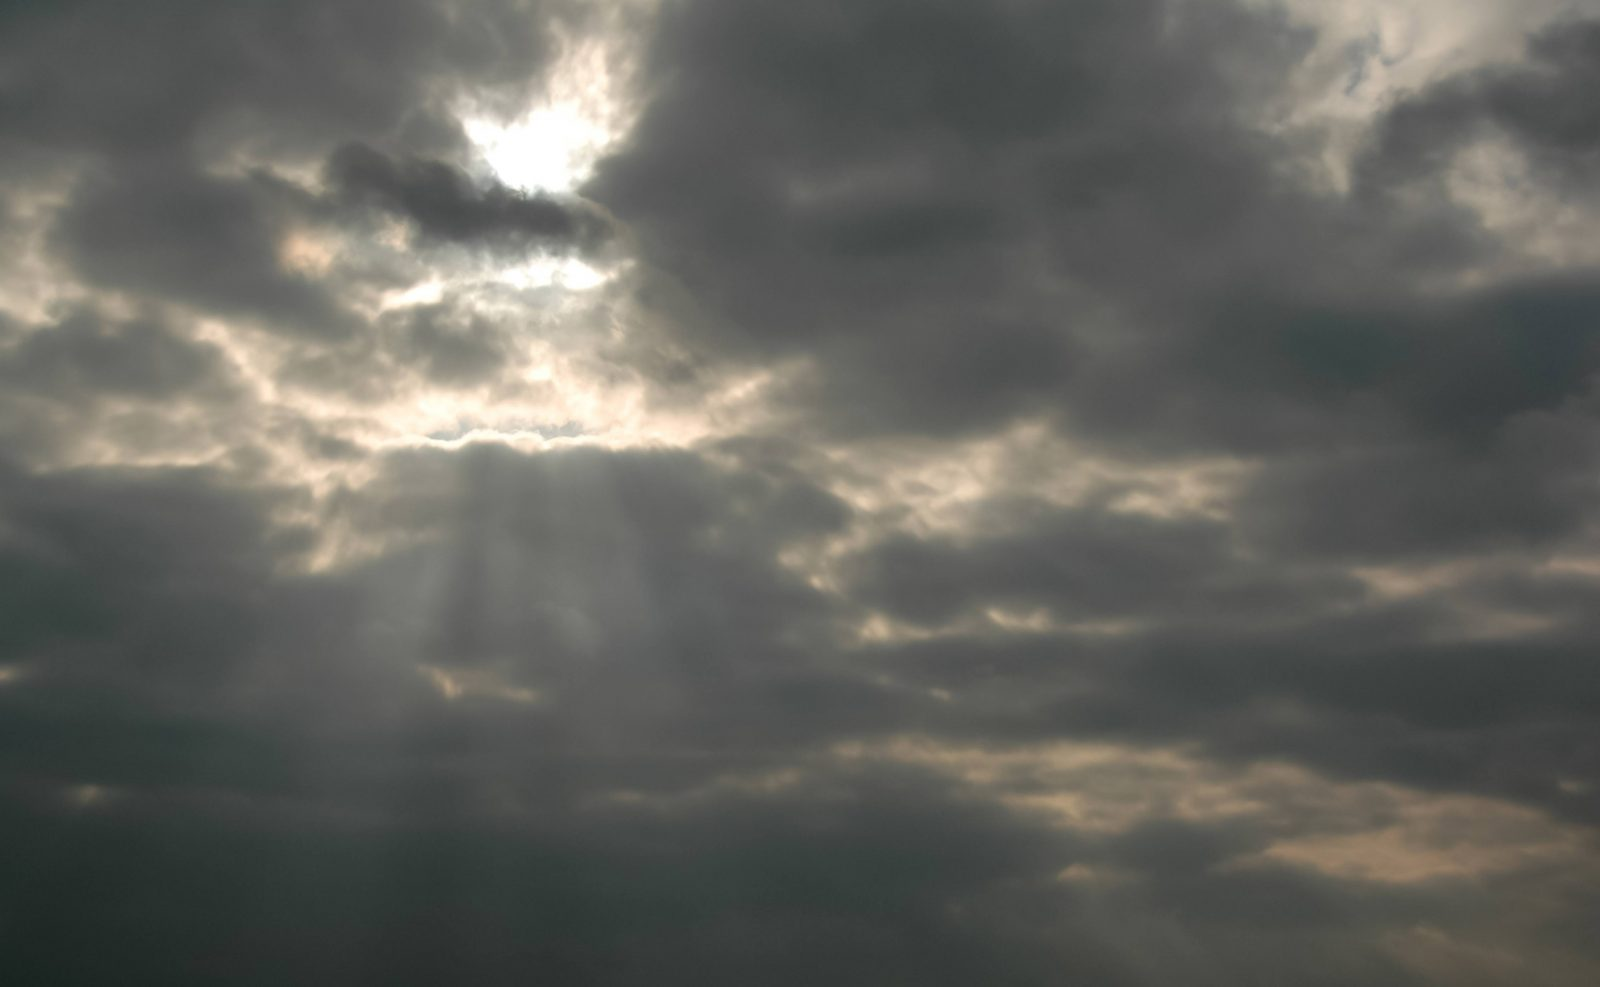 Sun beams through a dark cloudy sky